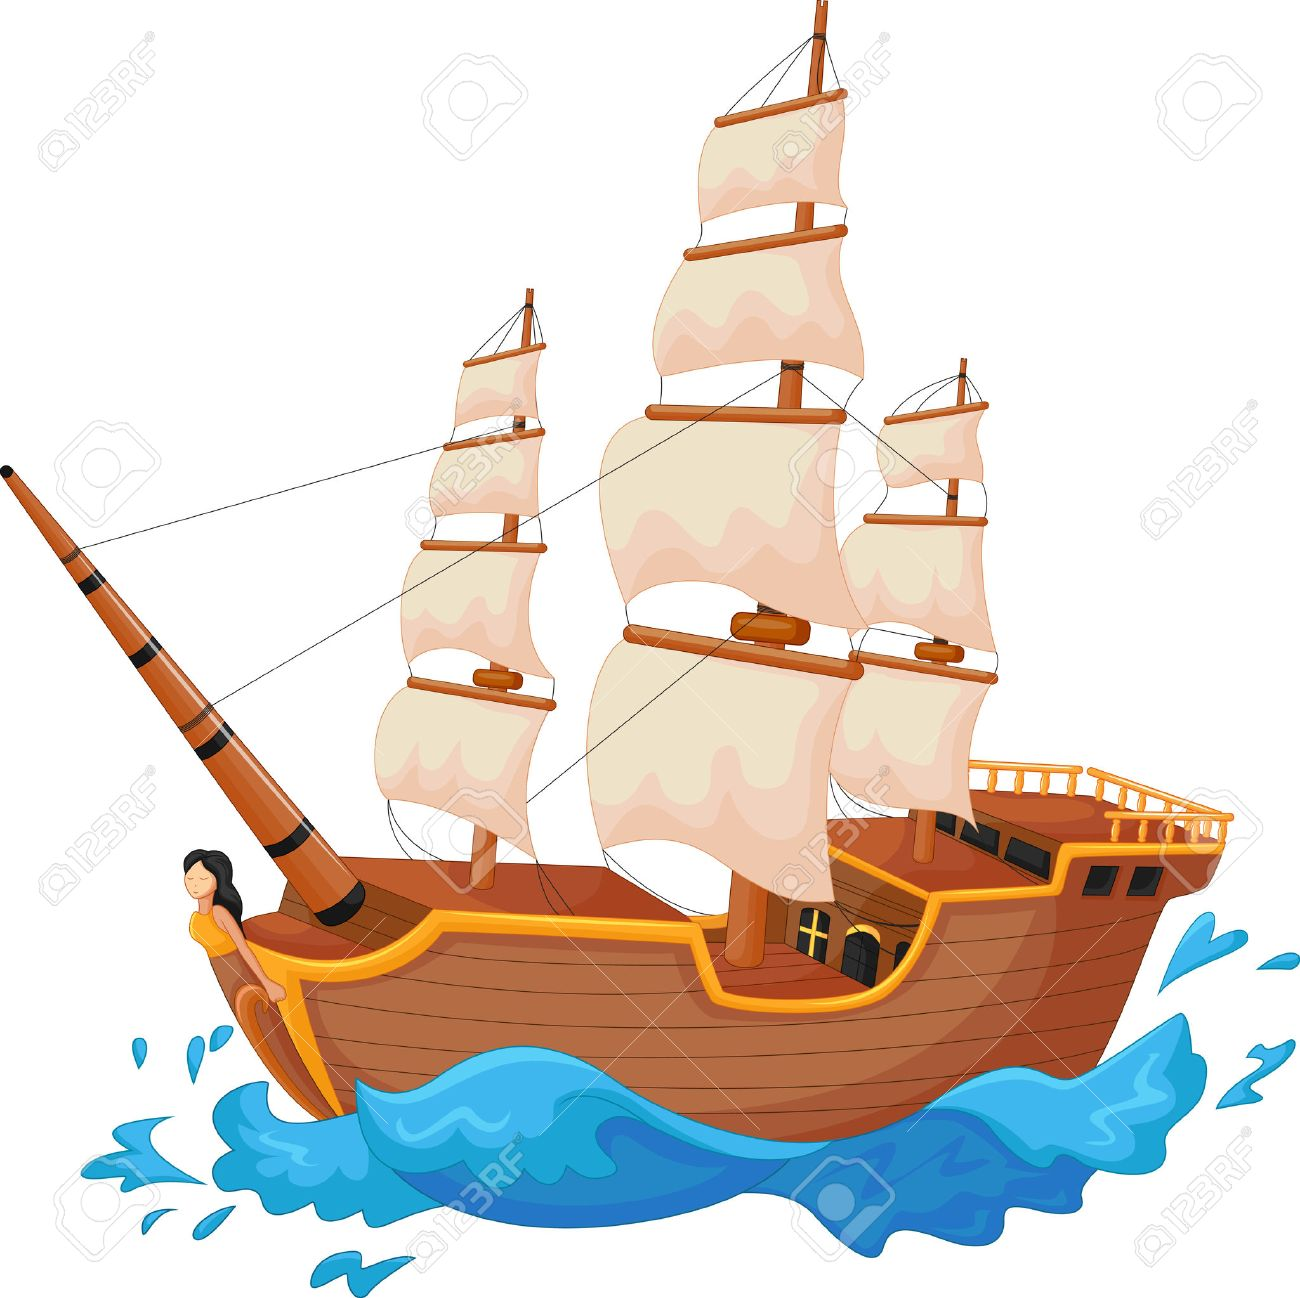 cartoon ship royalty free cliparts vectors and stock illustration image 33366874 cartoon ship